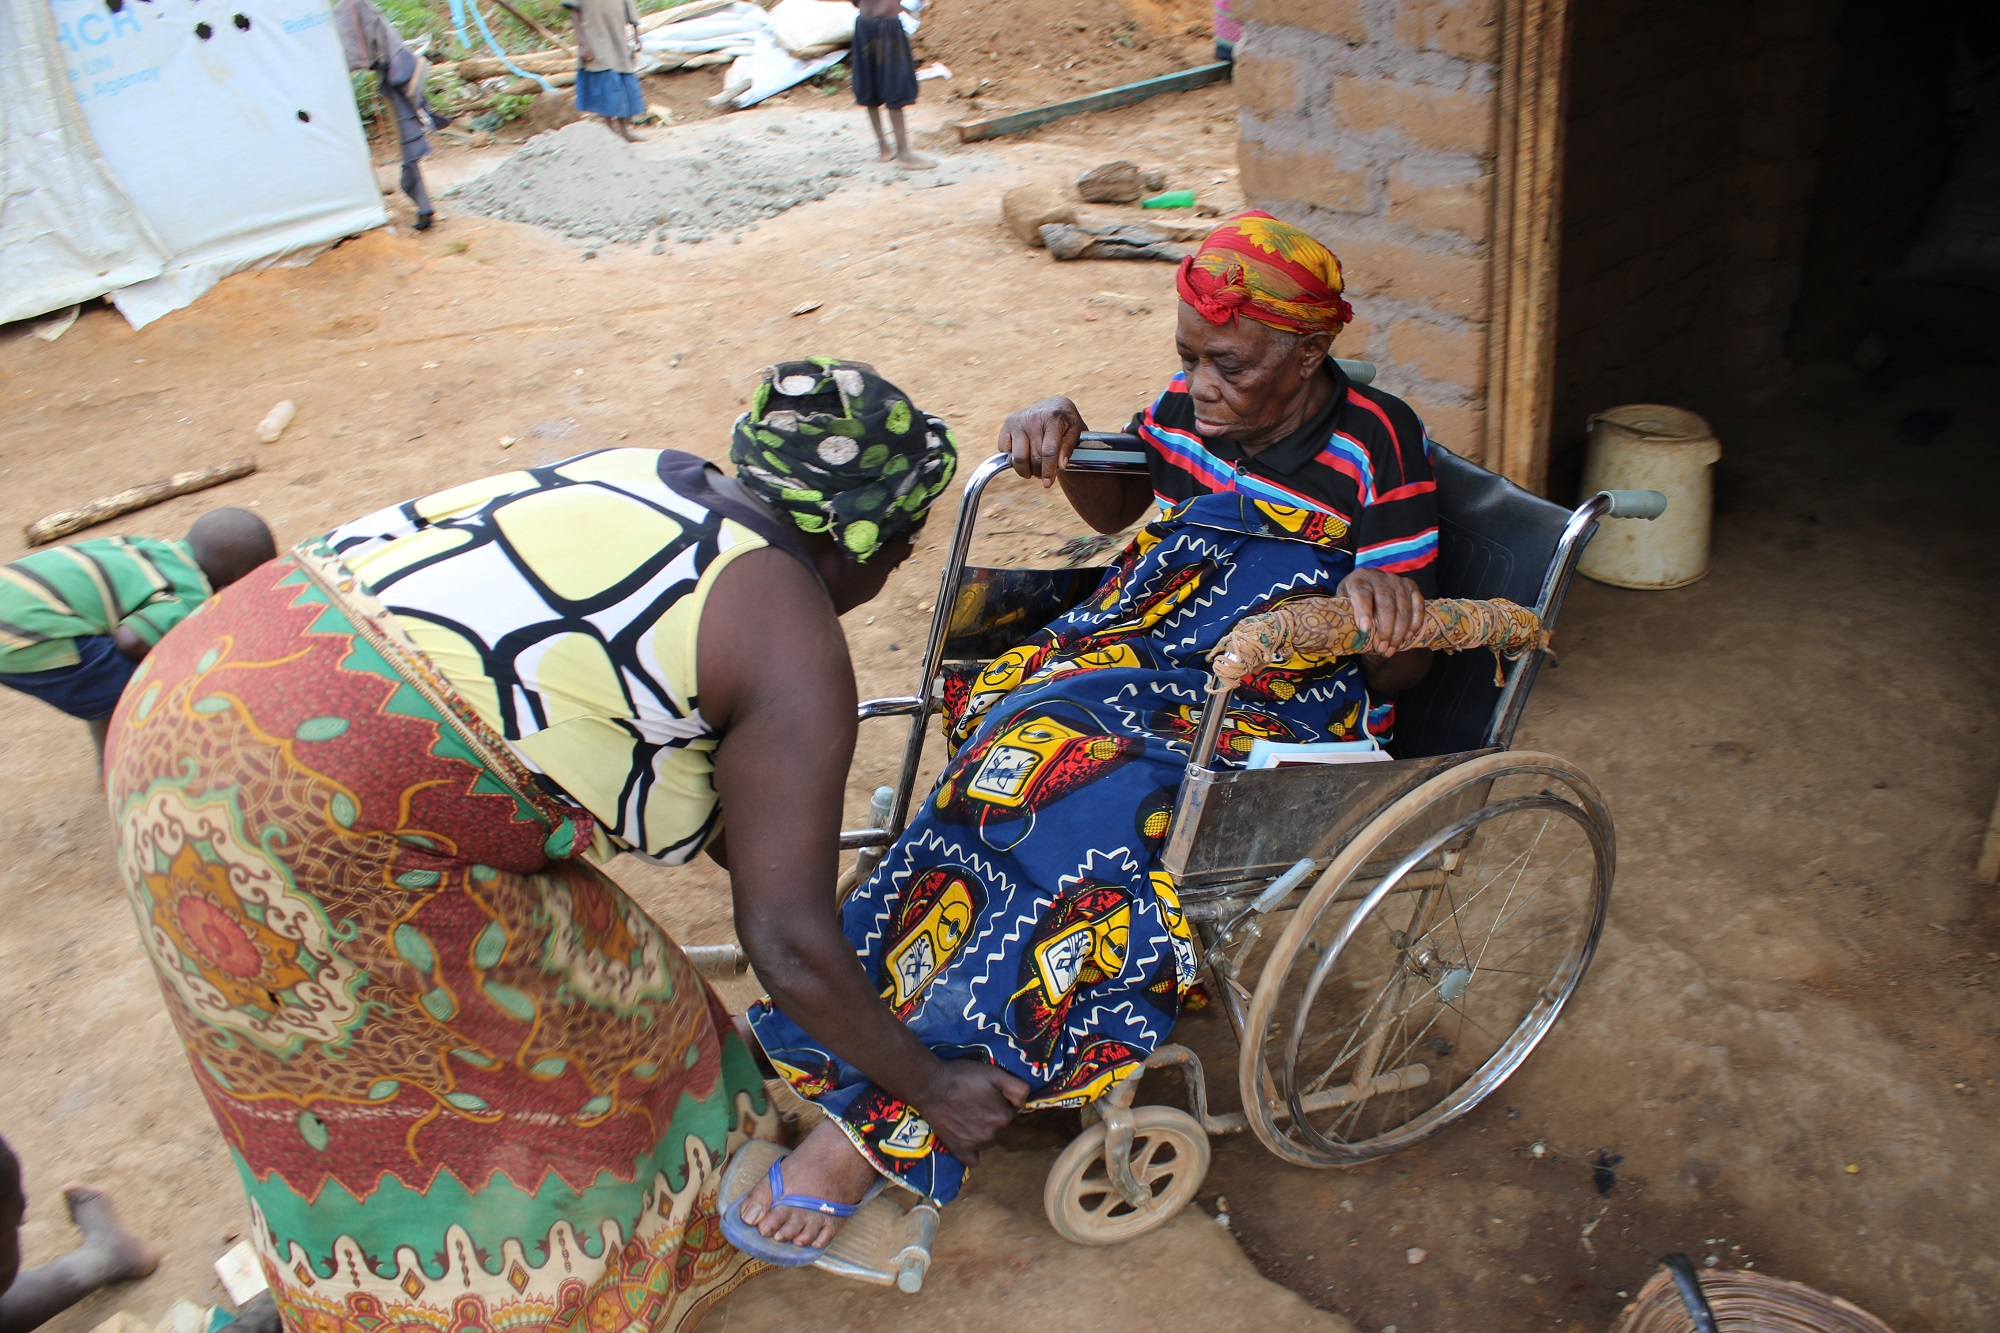 Navigating the refugee camp on a wheelchair is very difficult (c) Ben Small/HelpAge International